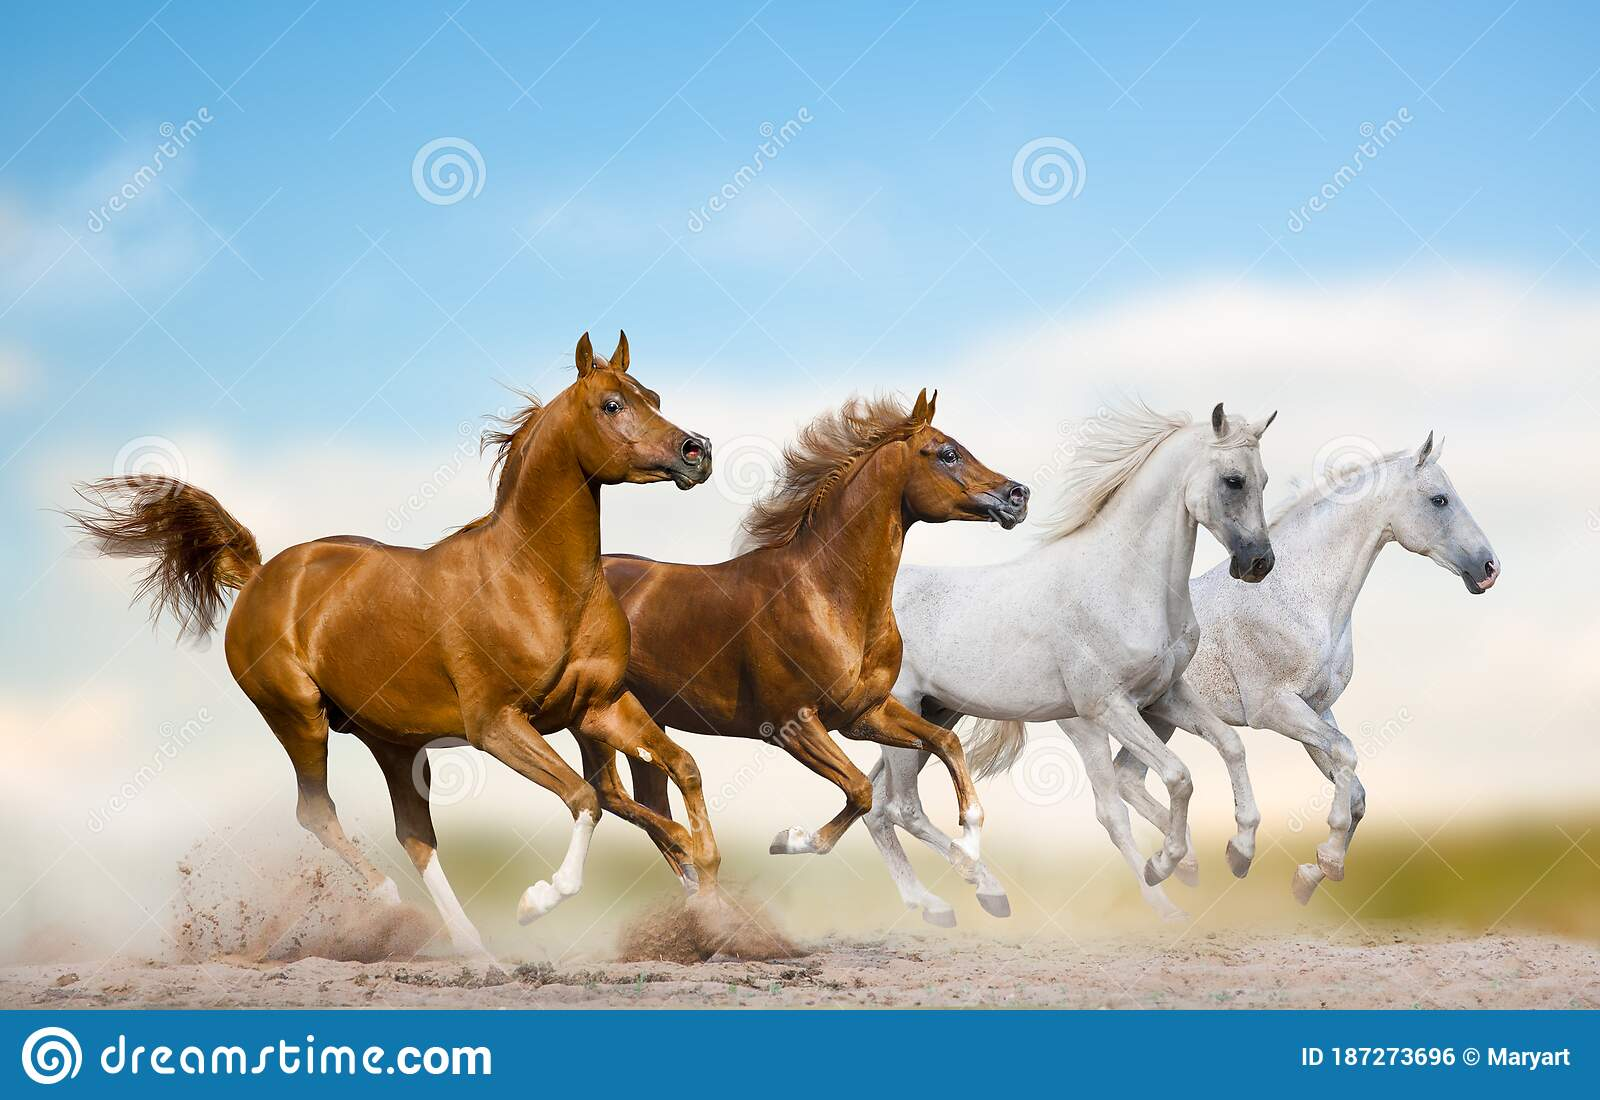 Wild Arabian Stallions Running Together In Herd On A Wild Stock Photo Image Of Pure Isolated 187273696